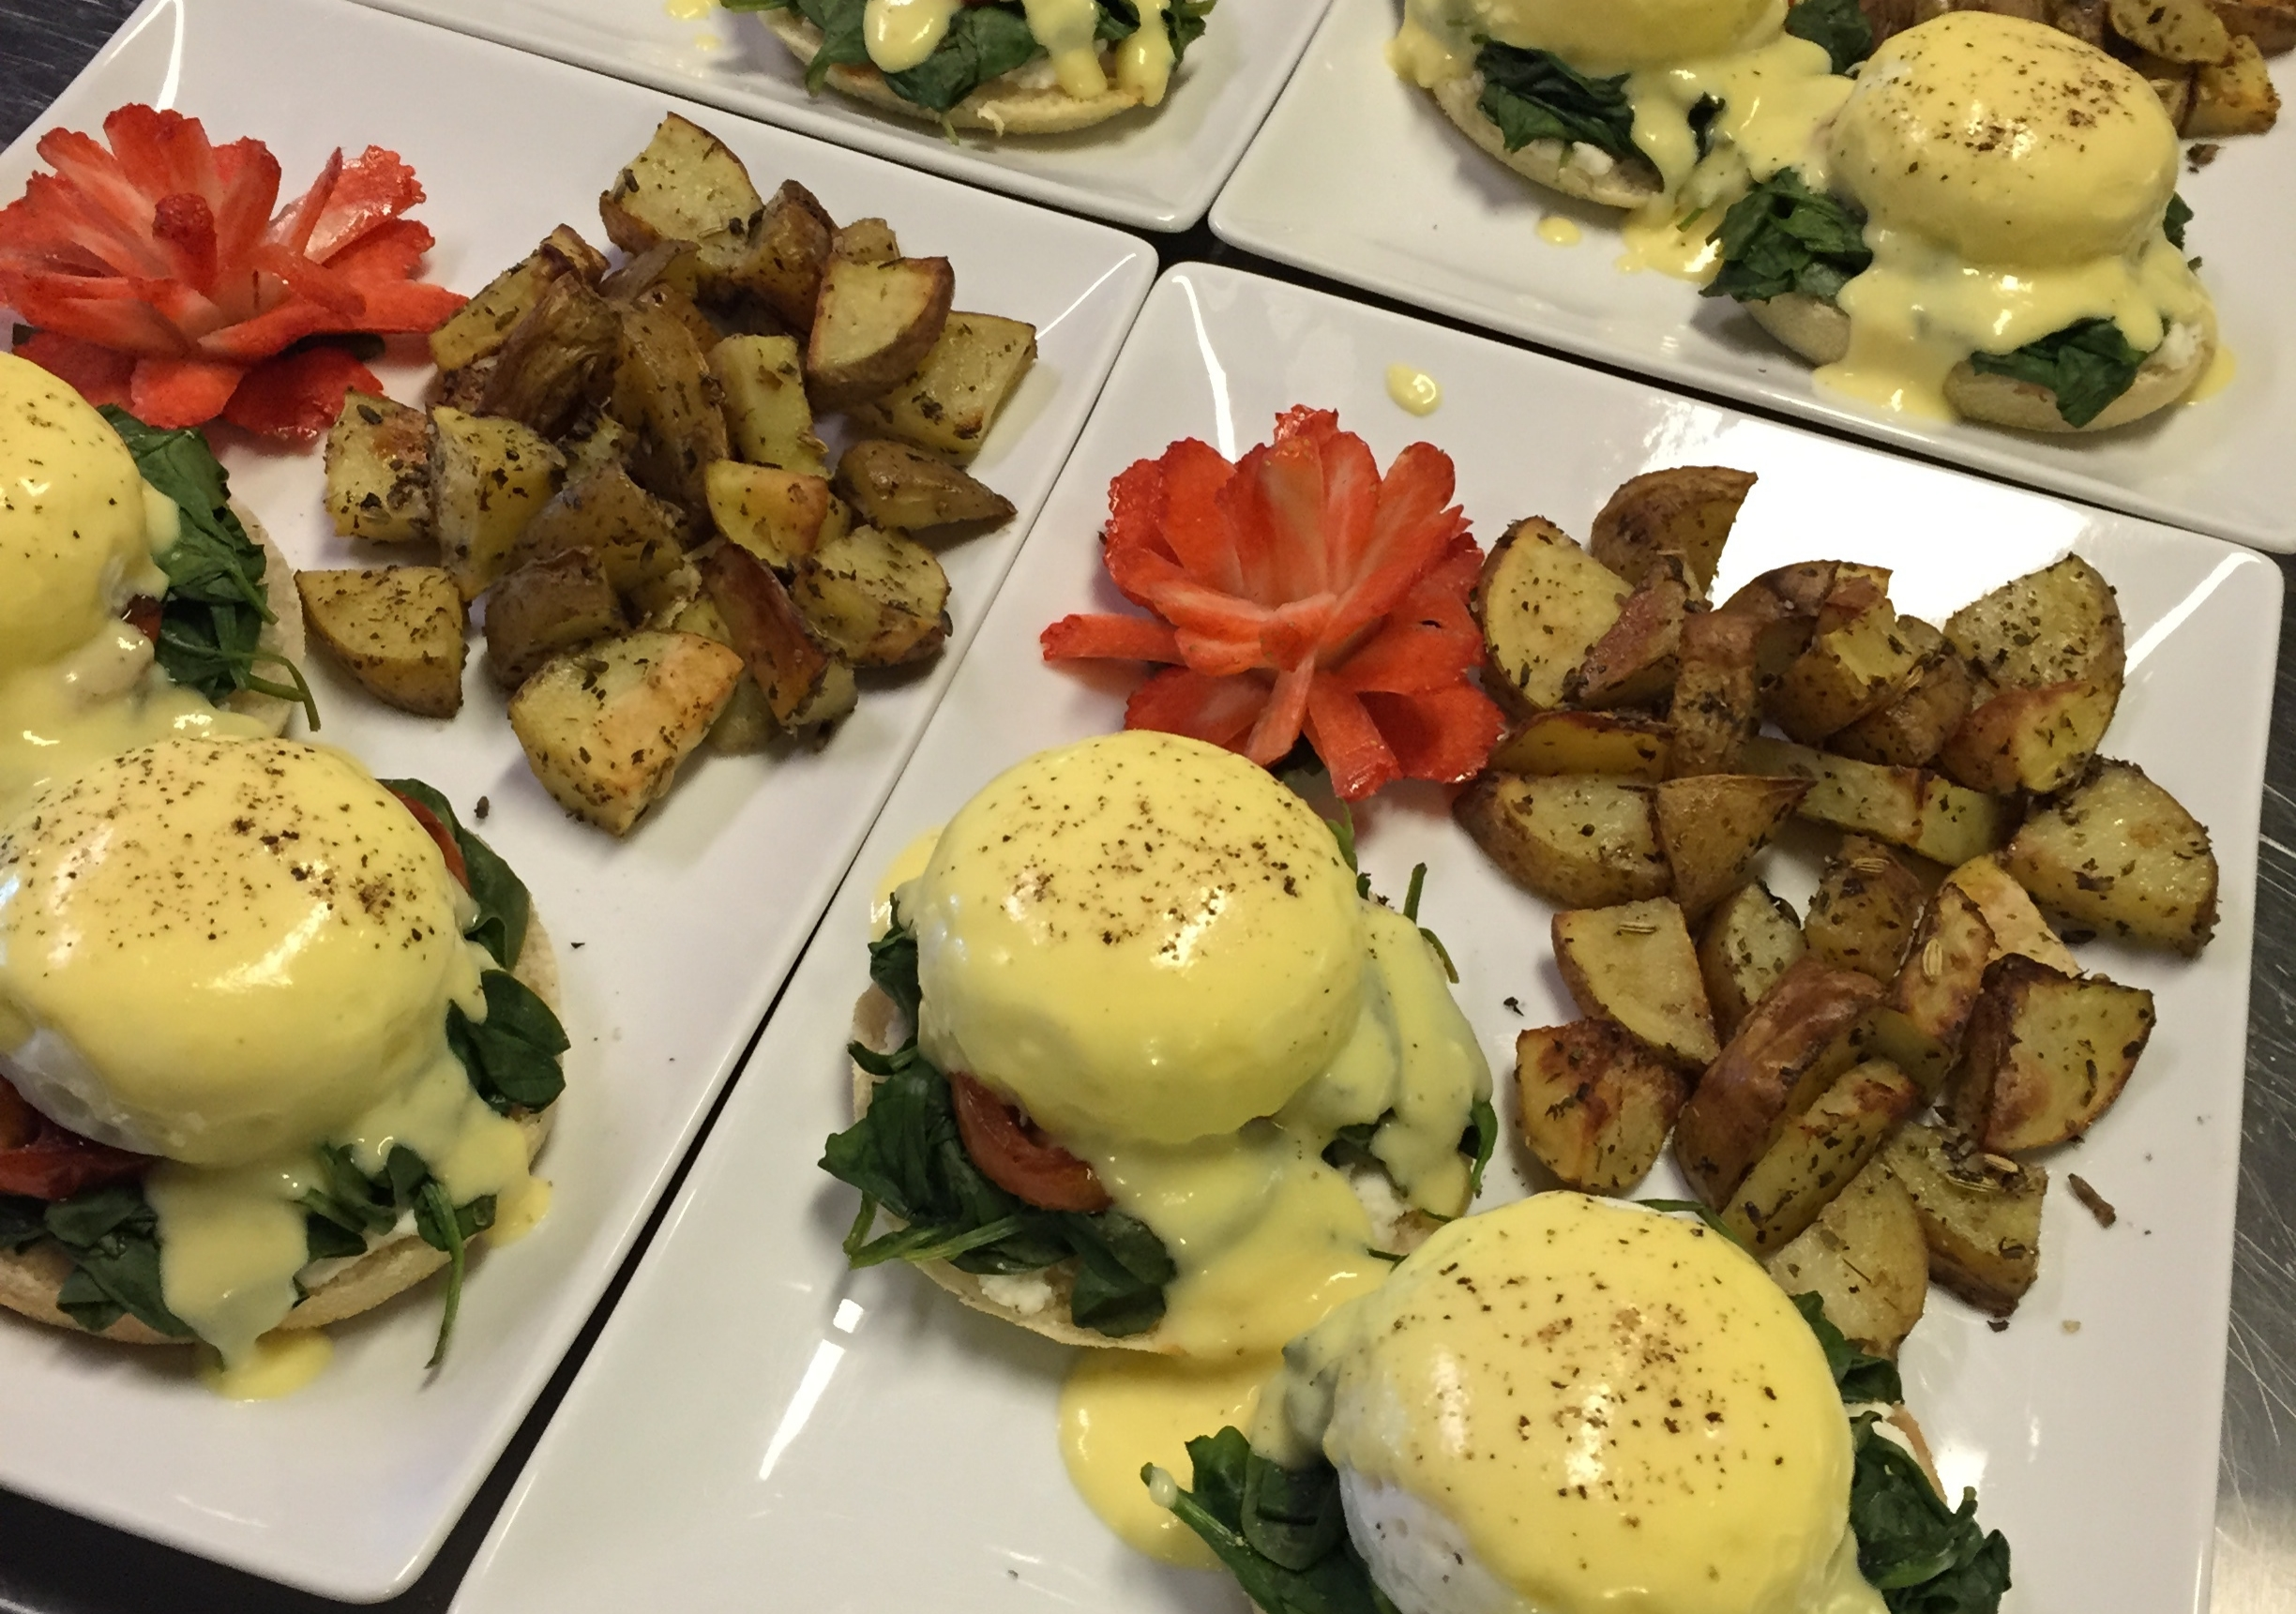 Enjoy a delicious vegetarian breakfast every morning--here you have a traditional Eggs Florentine with roasted potatoes.